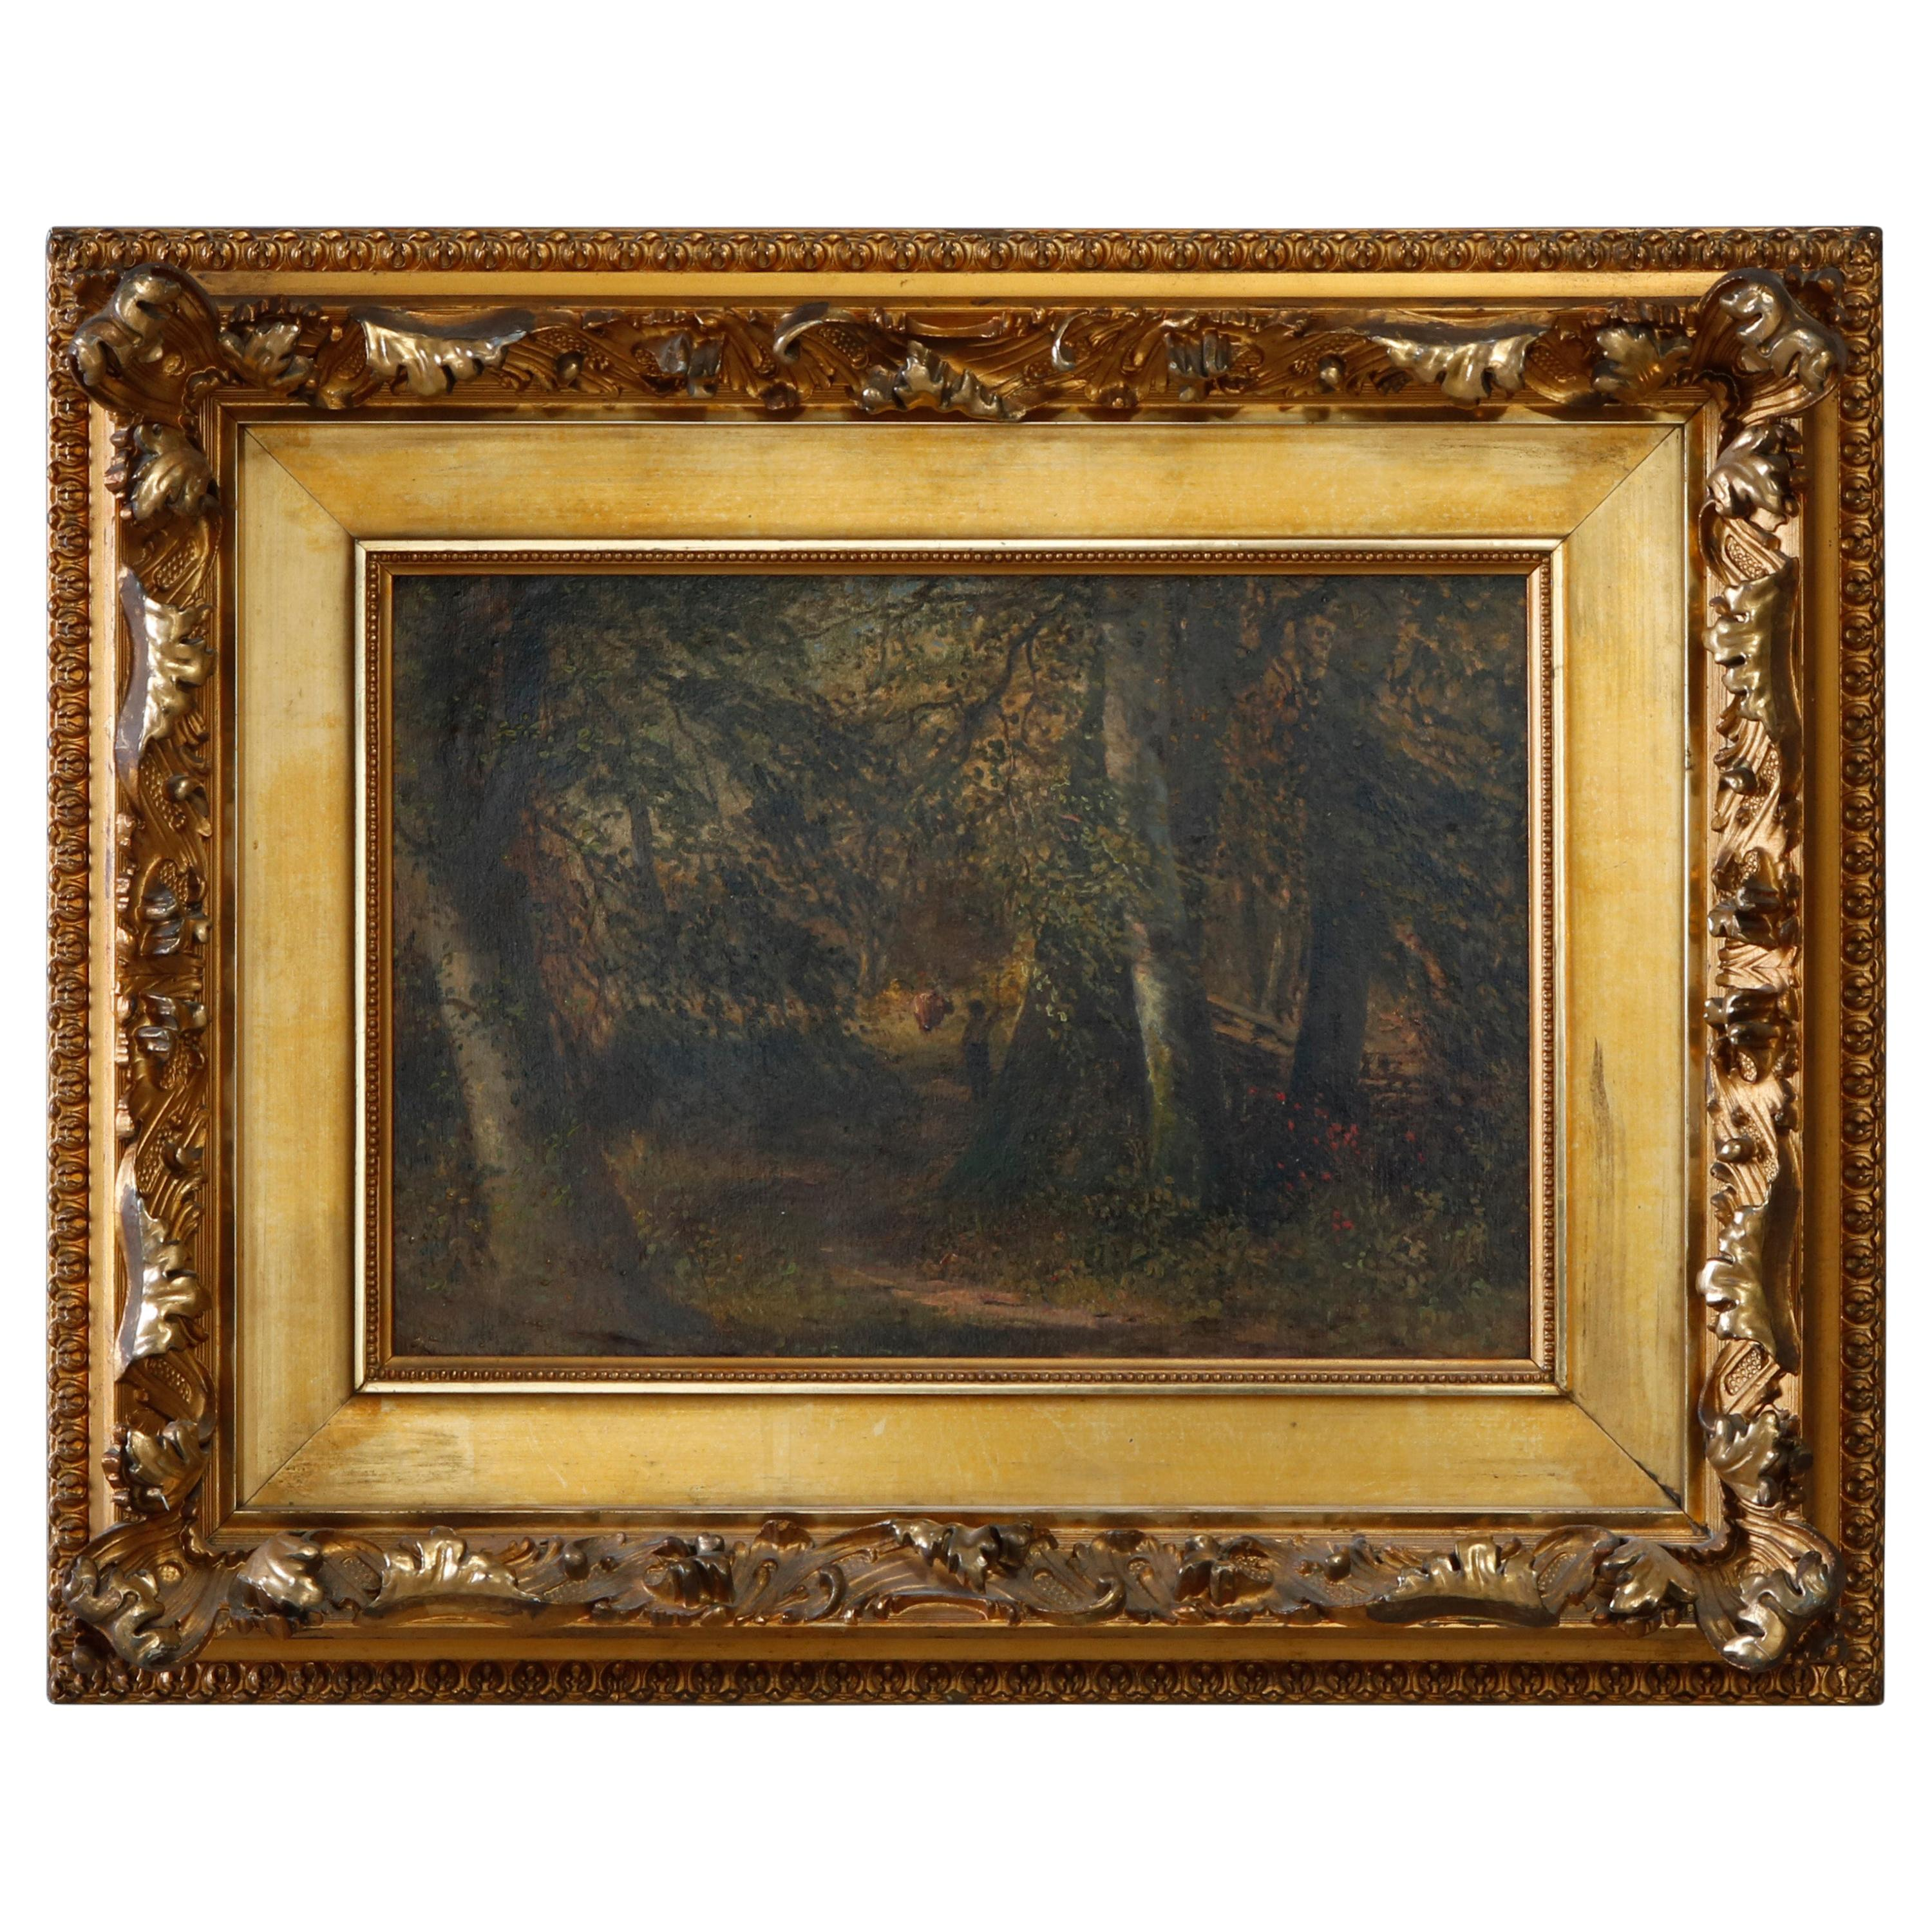 Antique Painting of Forest Landscape with Figures, Ornate Giltwood Frame, c 1890